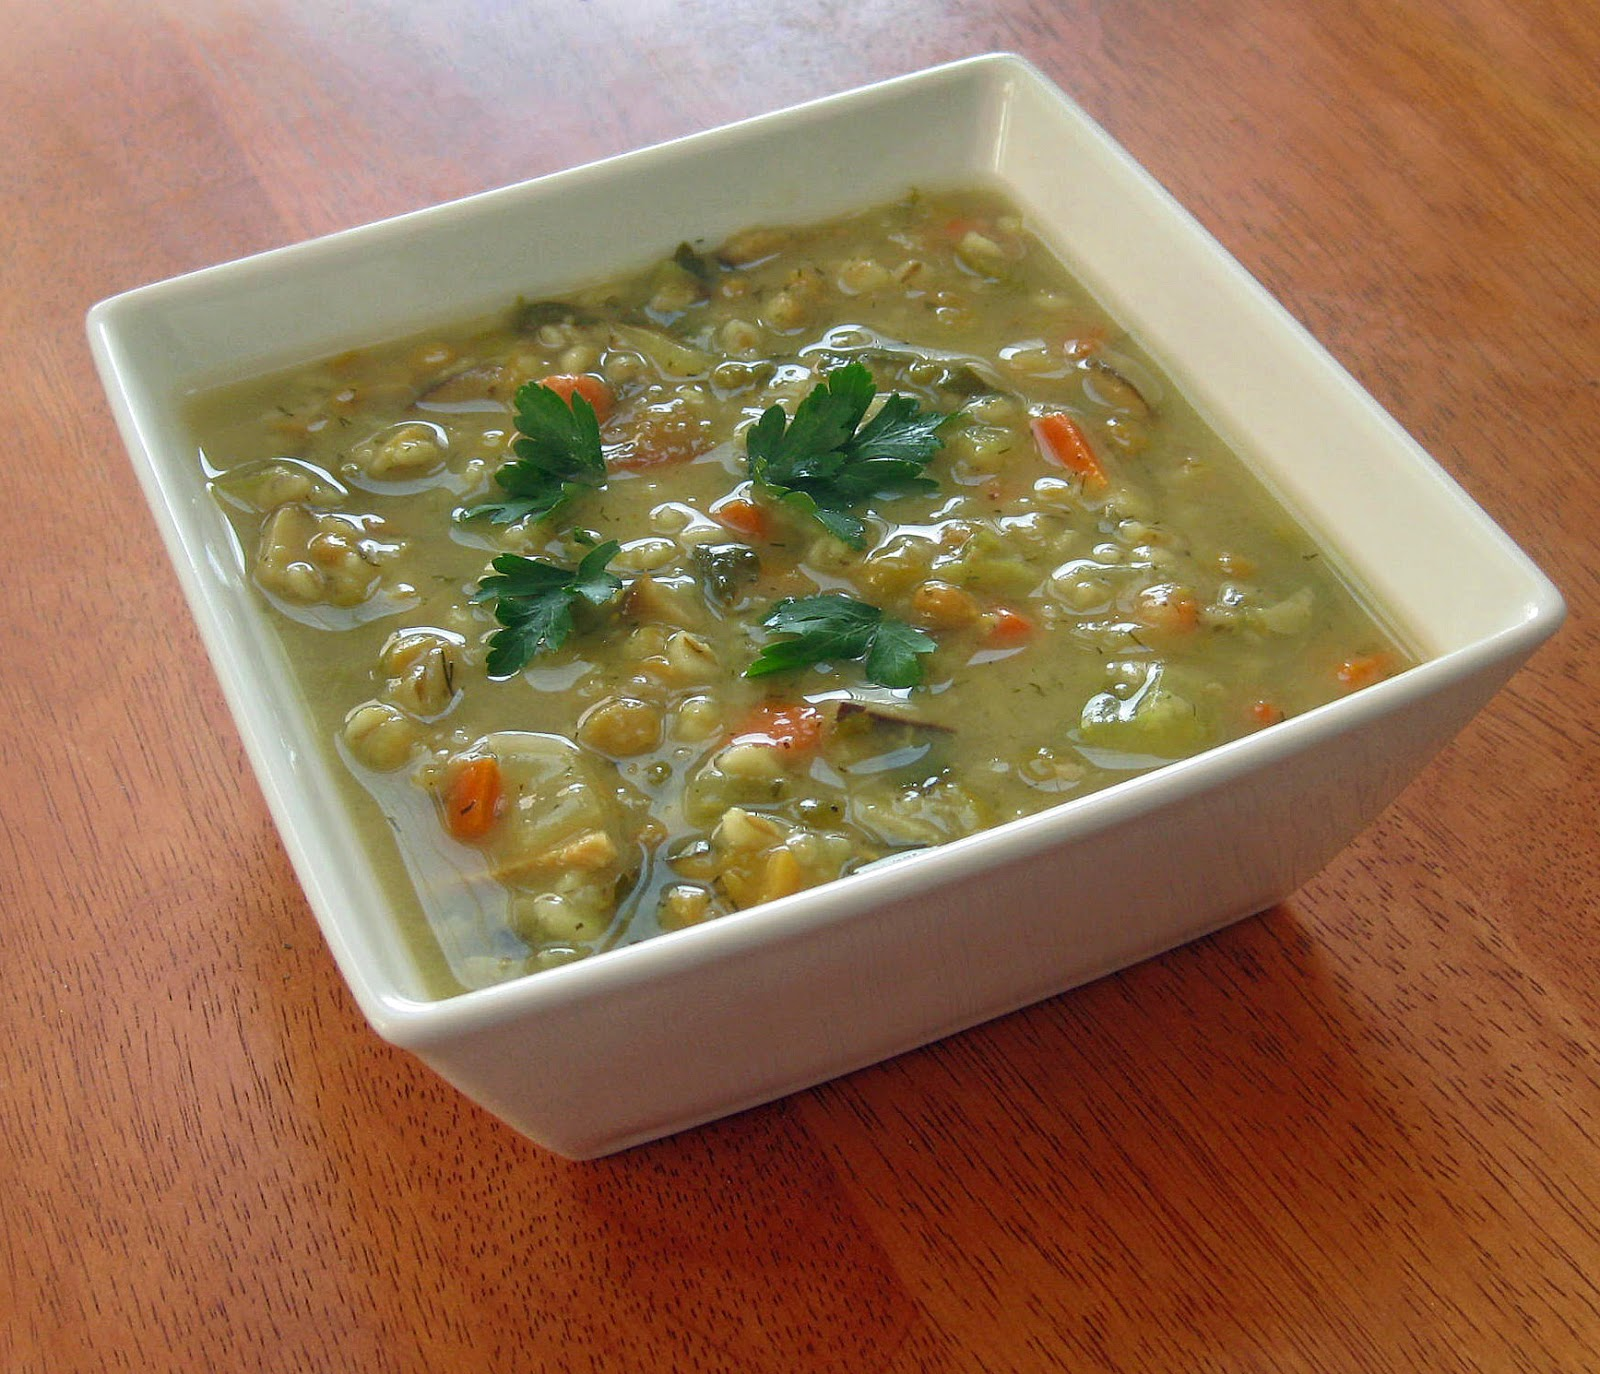 Cooking with Corey: Mushroom Barley Soup